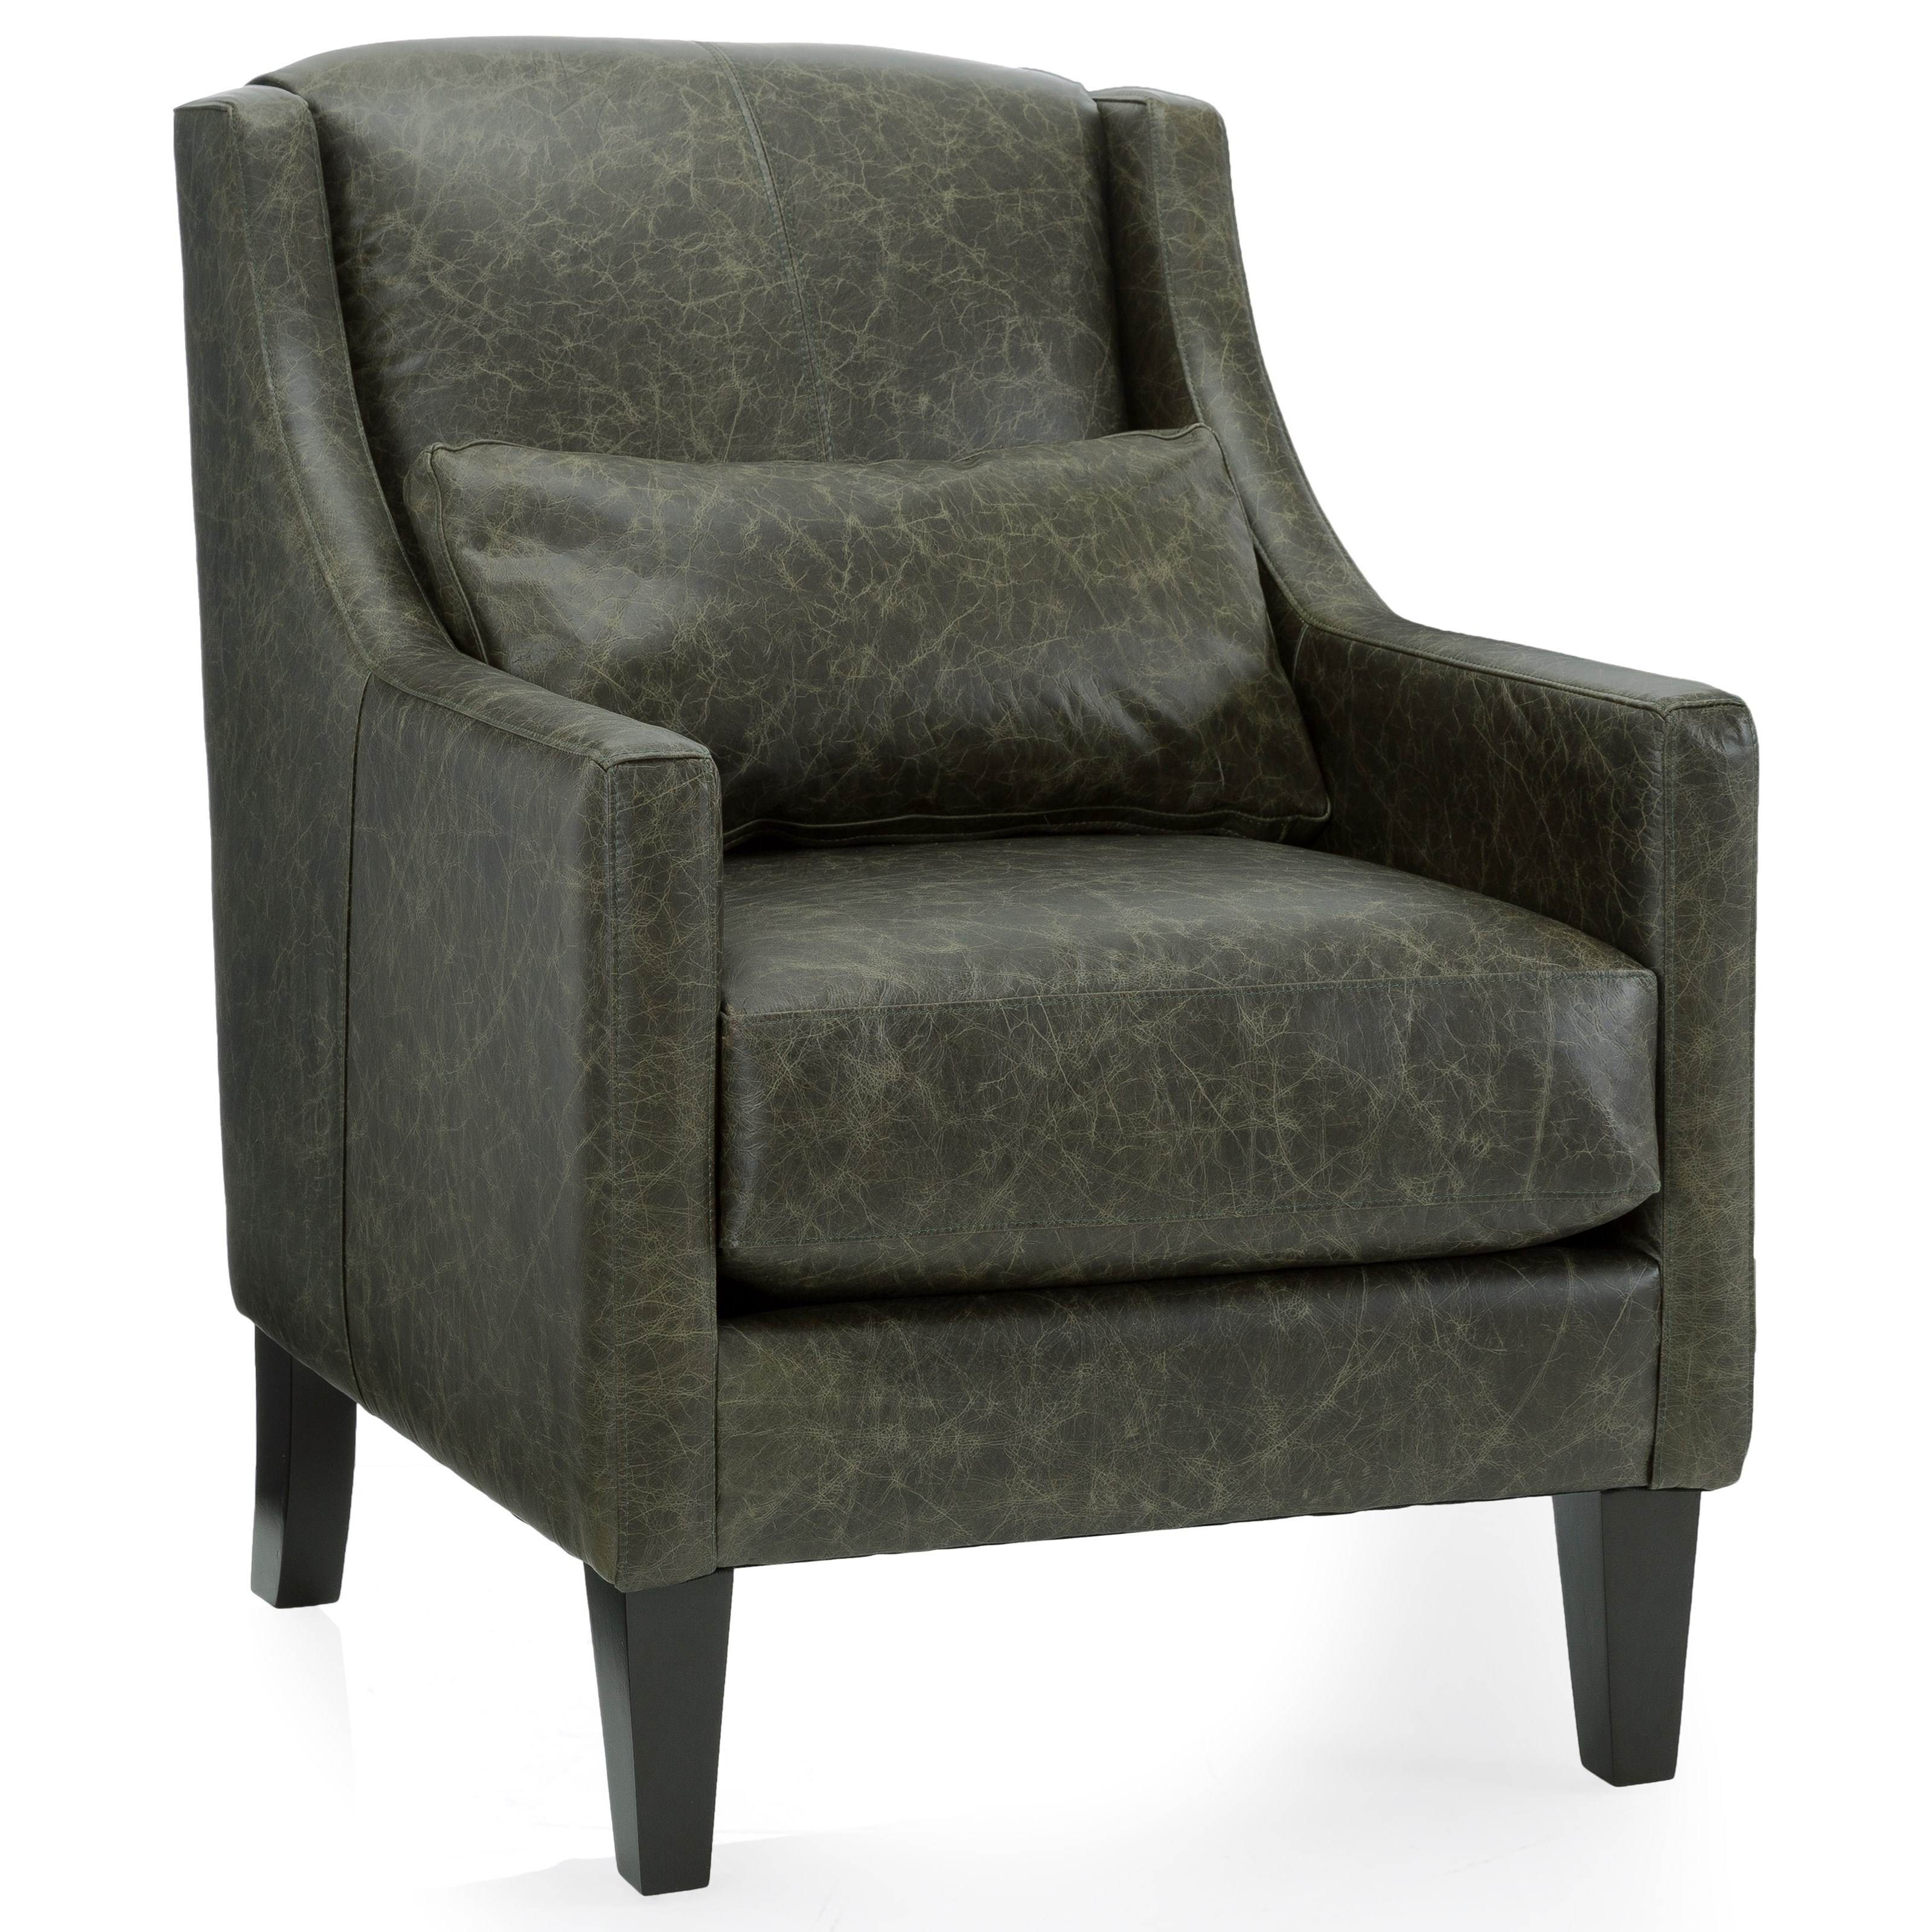 7606 Chair by Decor-Rest at Wayside Furniture